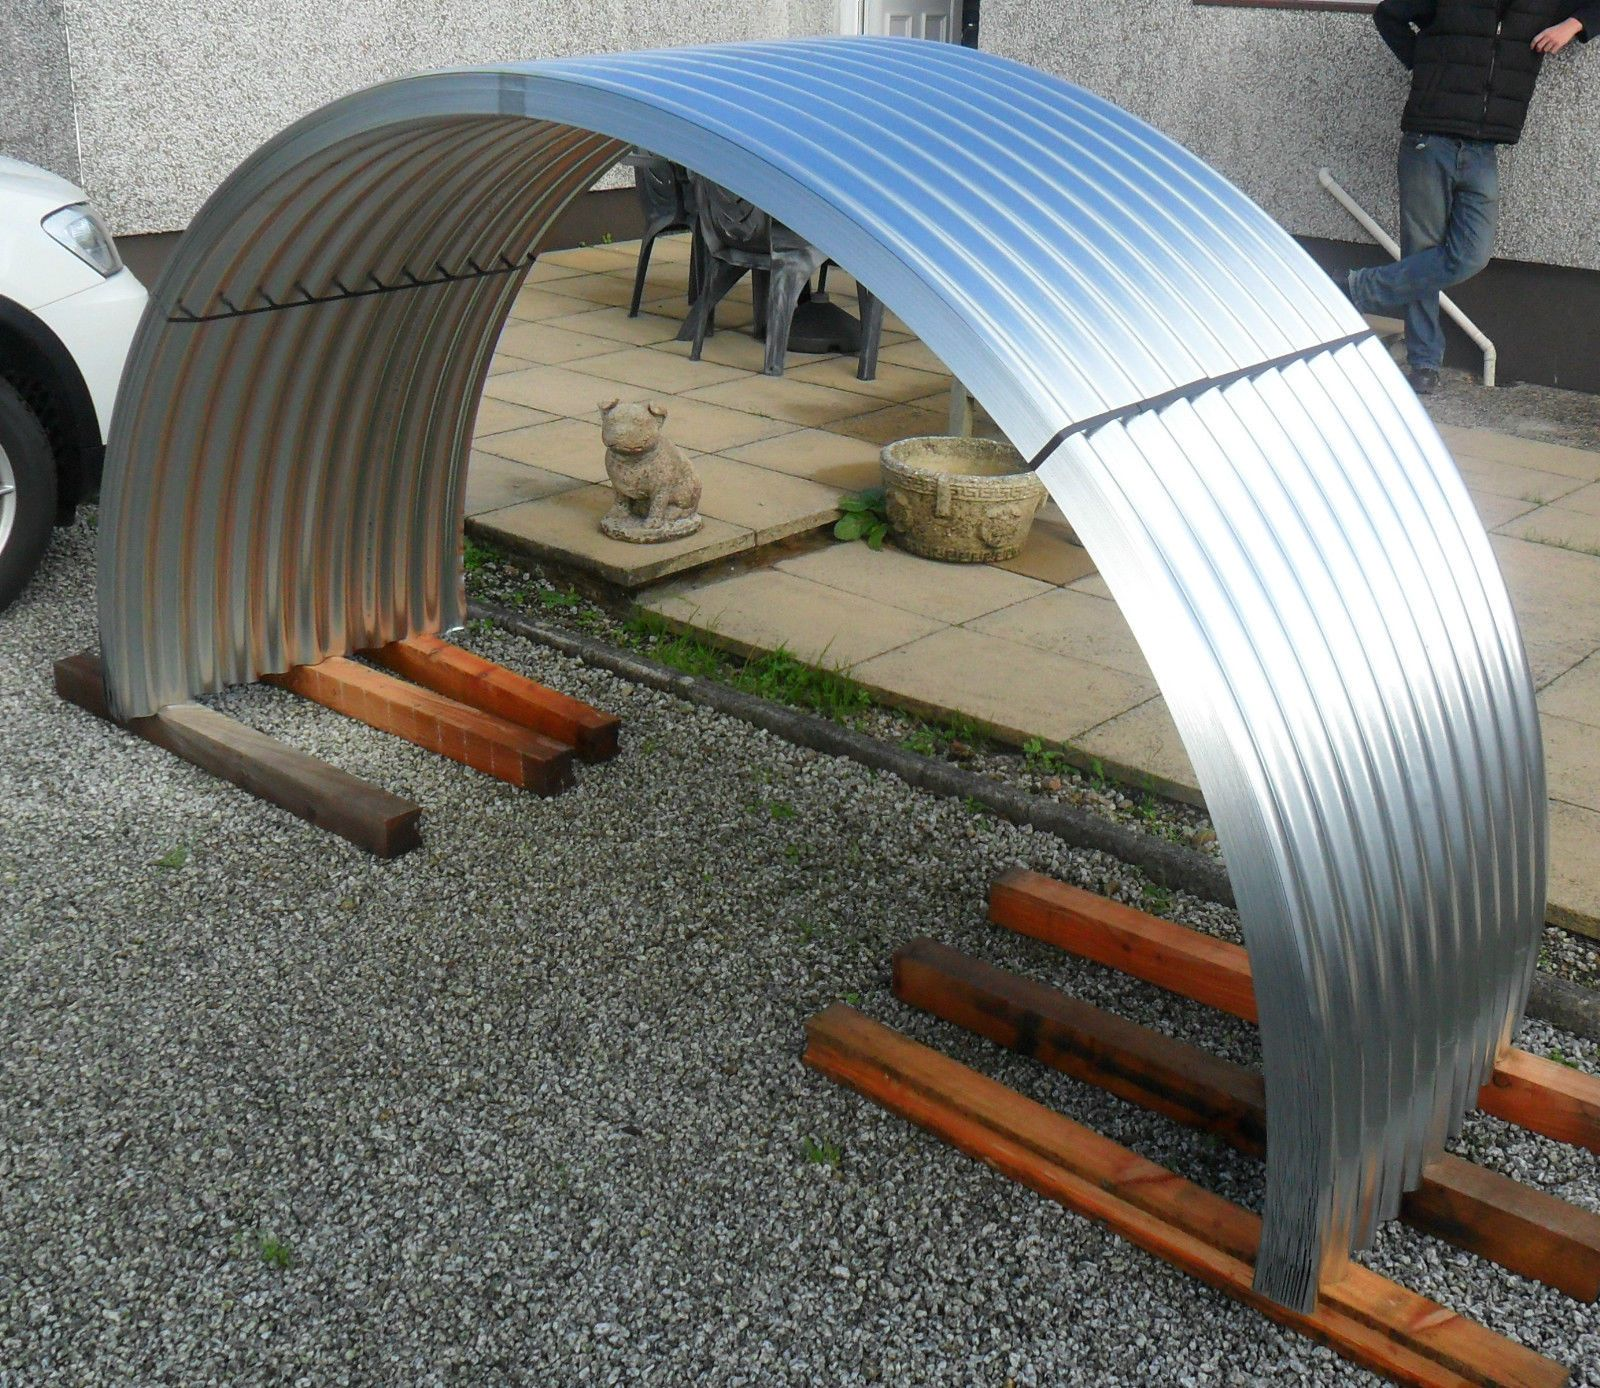 Brand New Galvanised Steel Corrugated Curved Roofing Sheets Pig Arks Ebay Flat Roof Shed Timber Roof Gazebo Roof